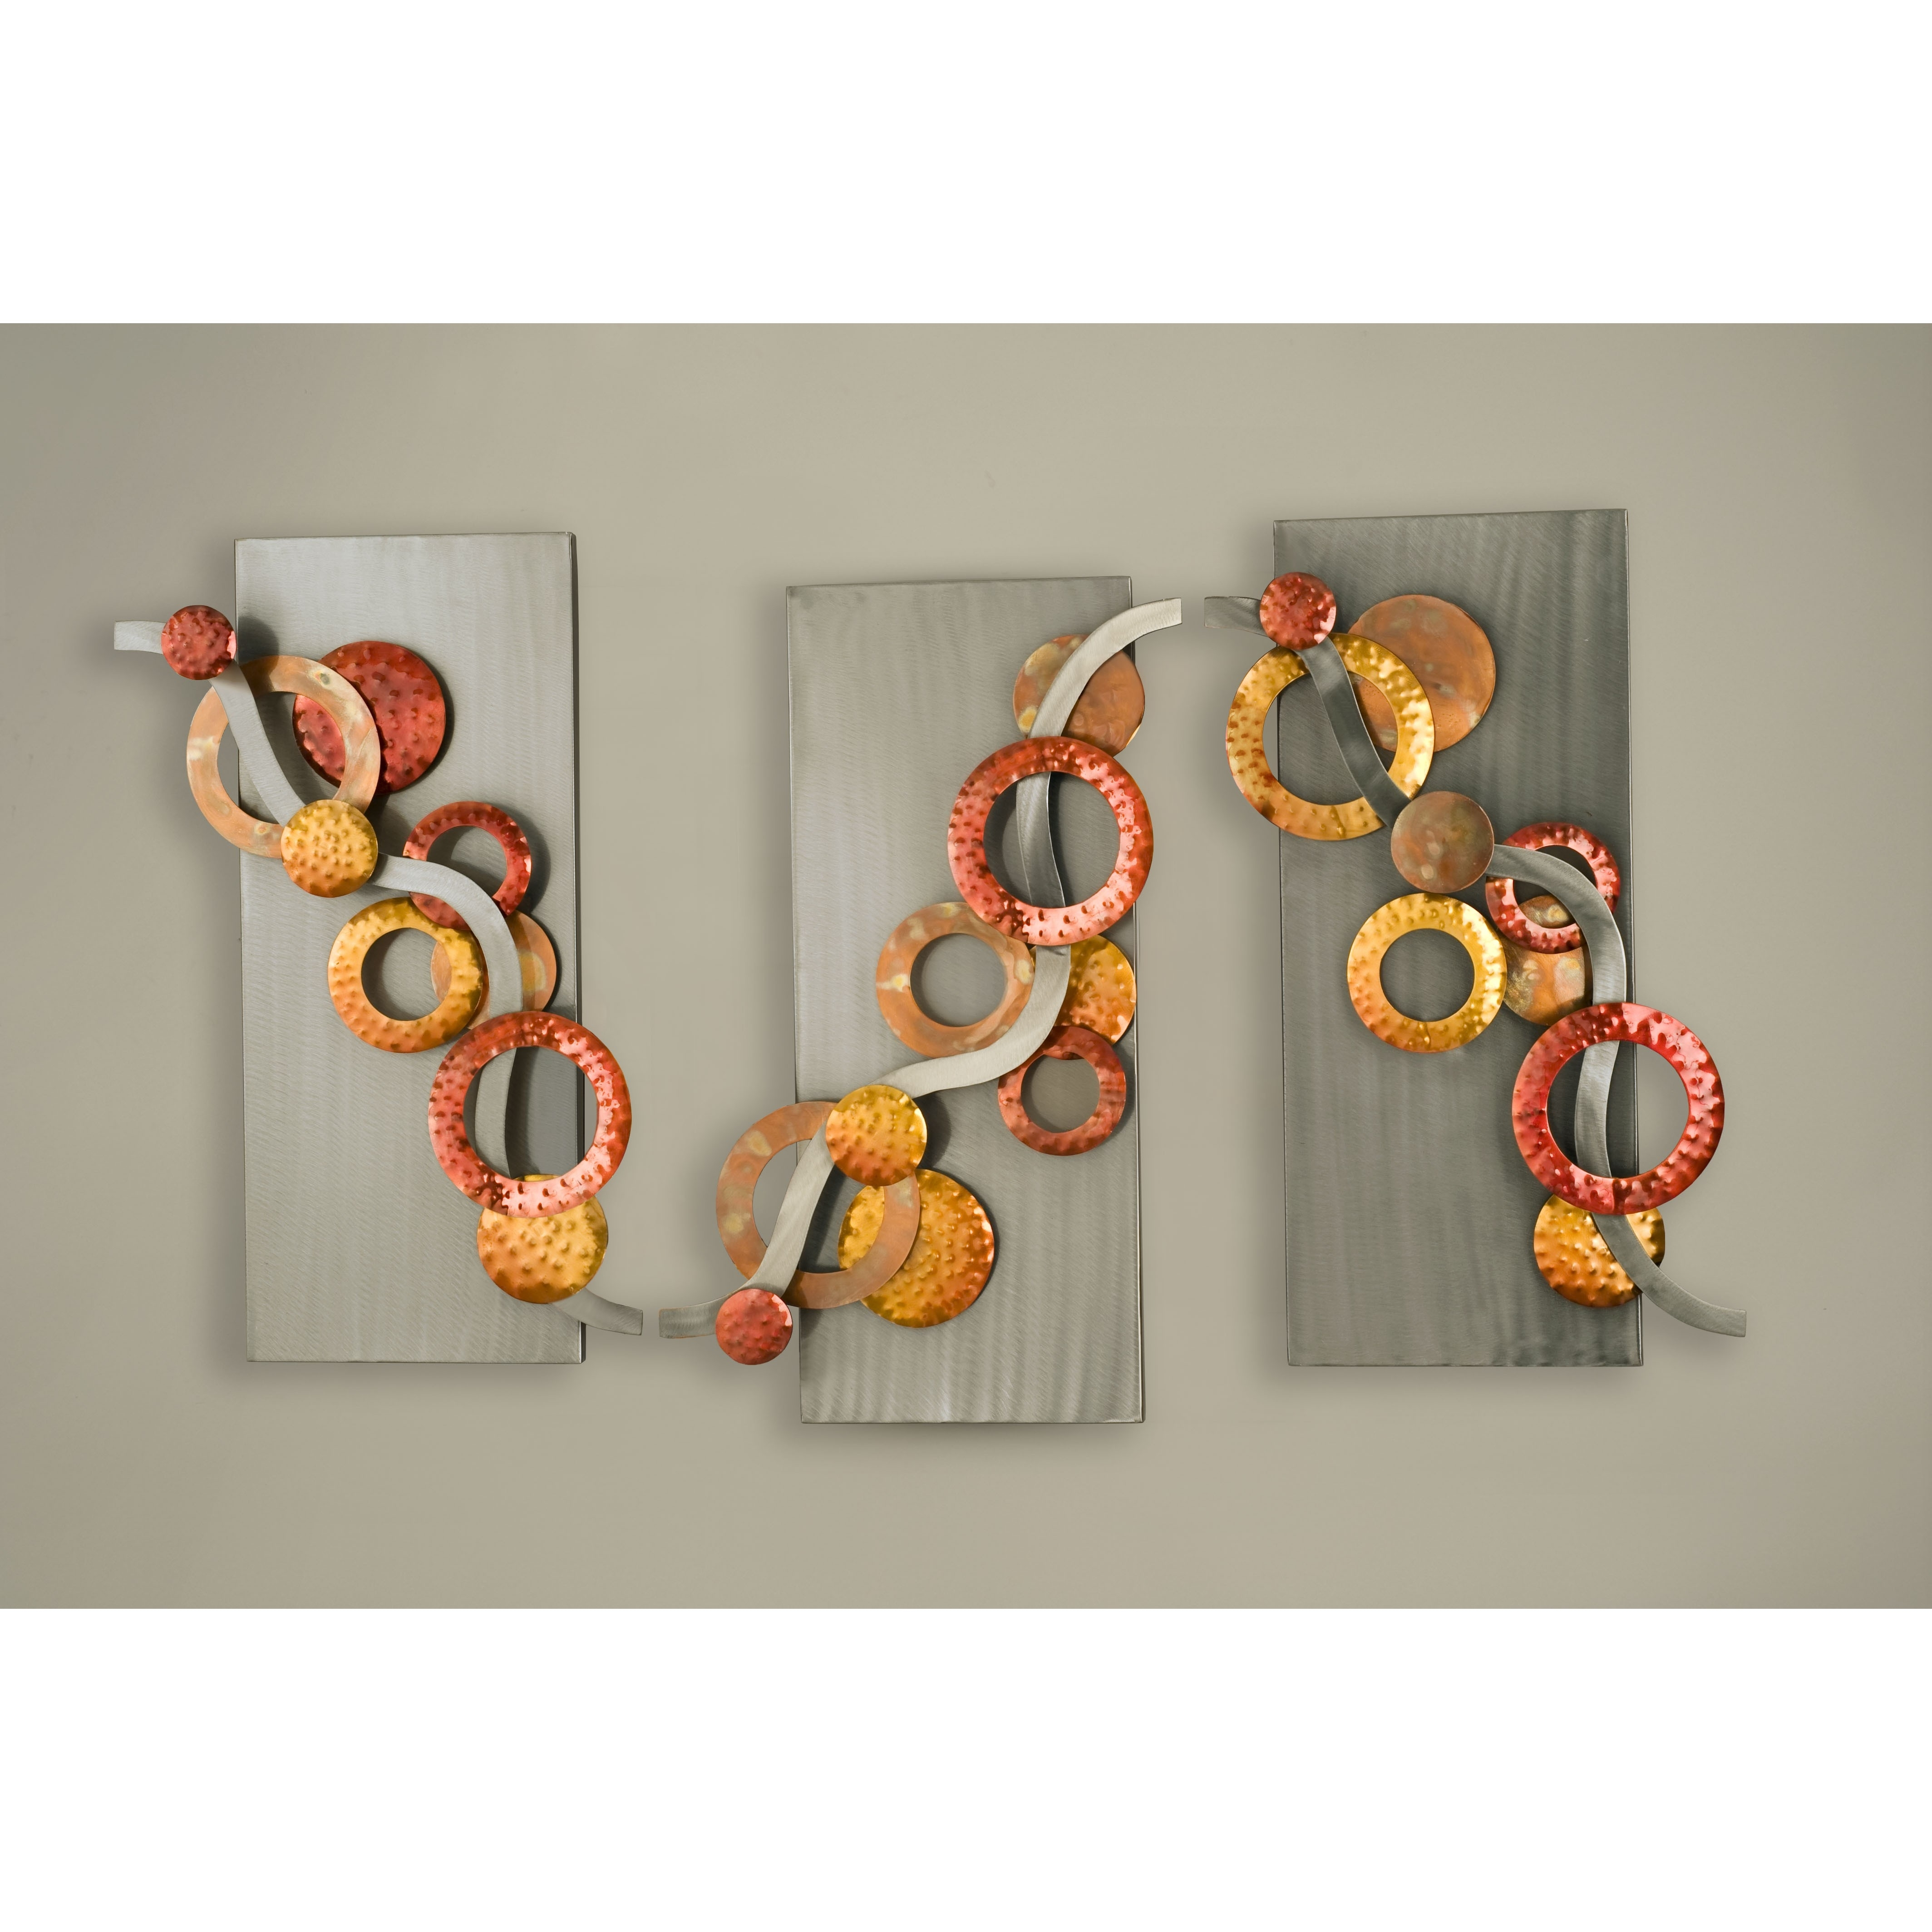 48 Wall Art Cheap, 10 Ideas For Inexpensive Wall Art Diy On The With Discount Wall Art (View 8 of 20)